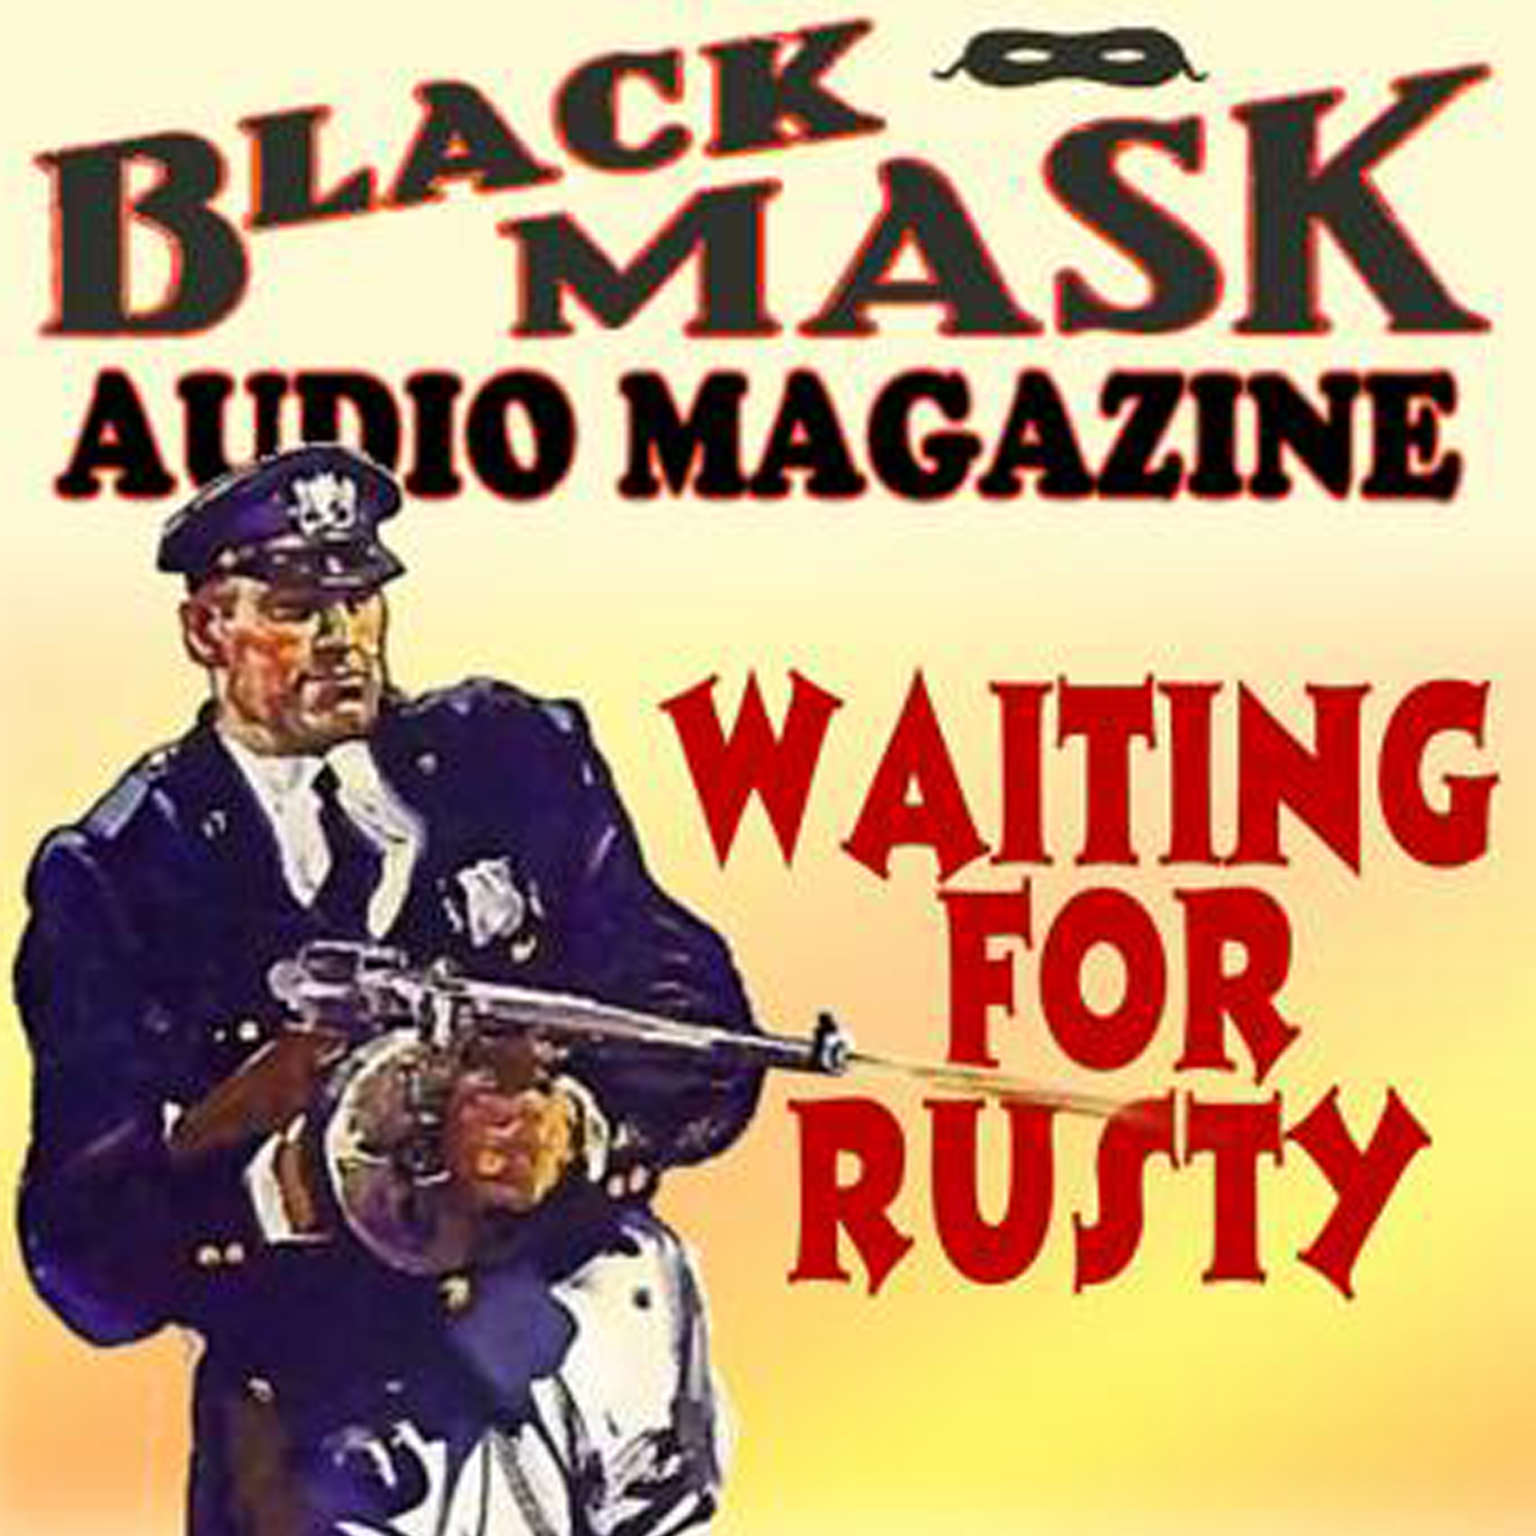 Printable Waiting for Rusty: Black Mask Audio Magazine Audiobook Cover Art